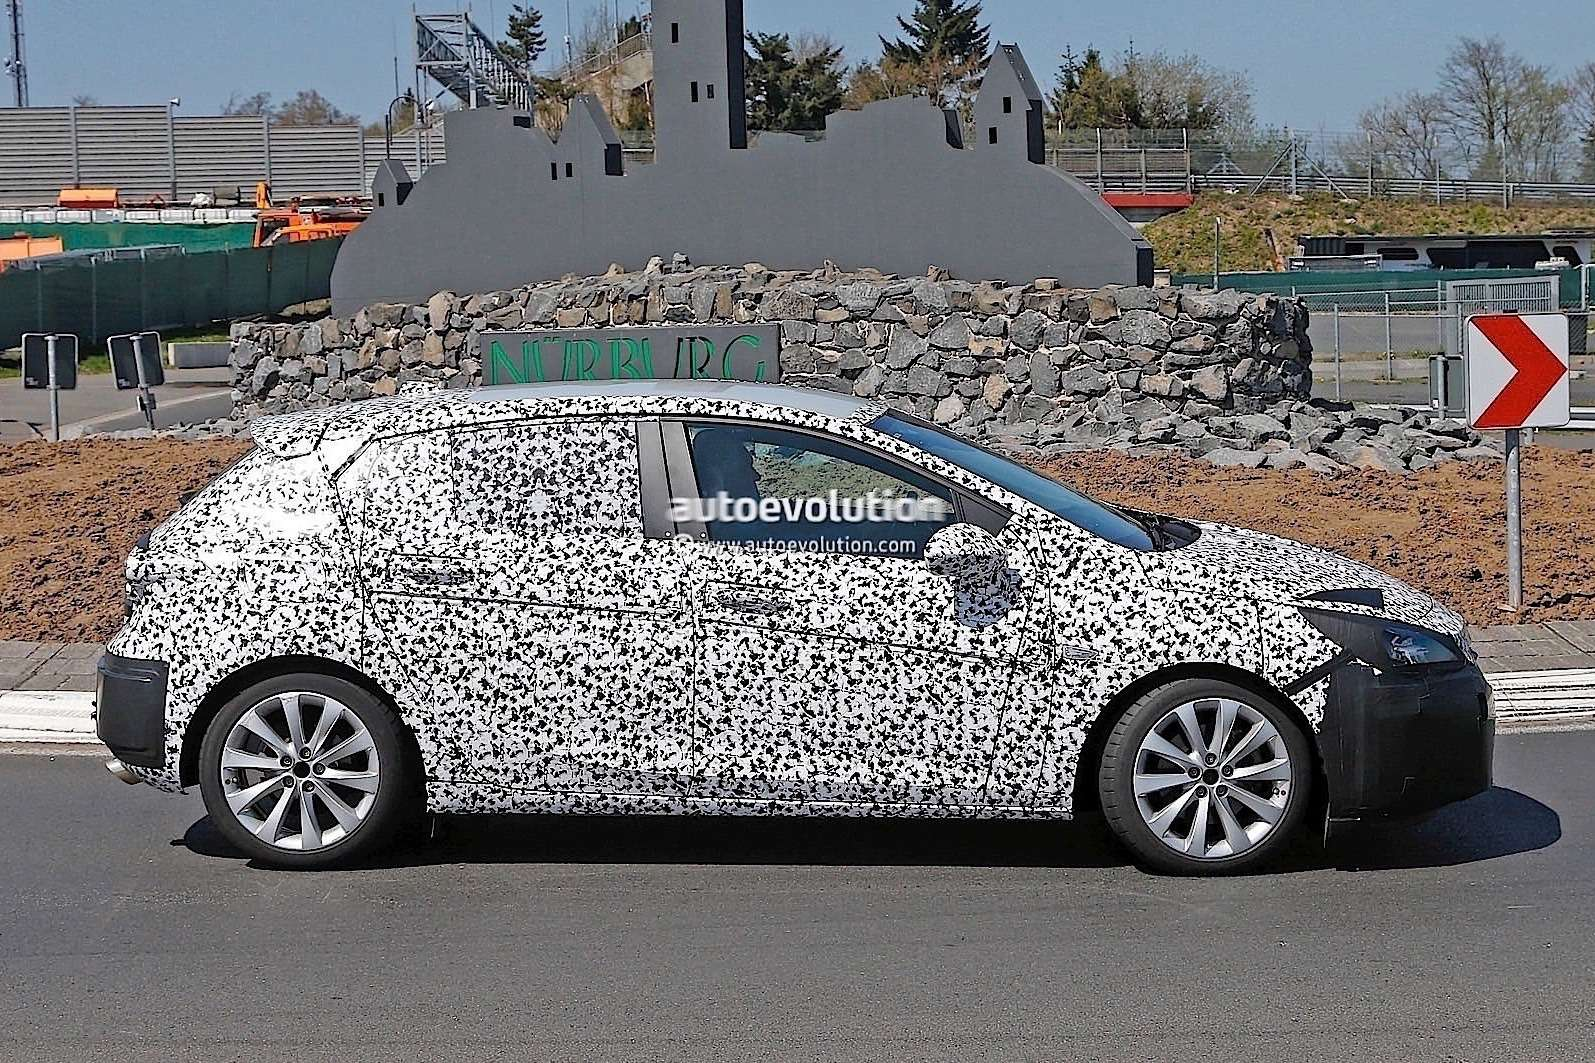 sportier-2016-opel-astra-gsi-spied-could-rival-focus-st-and-golf-gti-photo-gallery_4